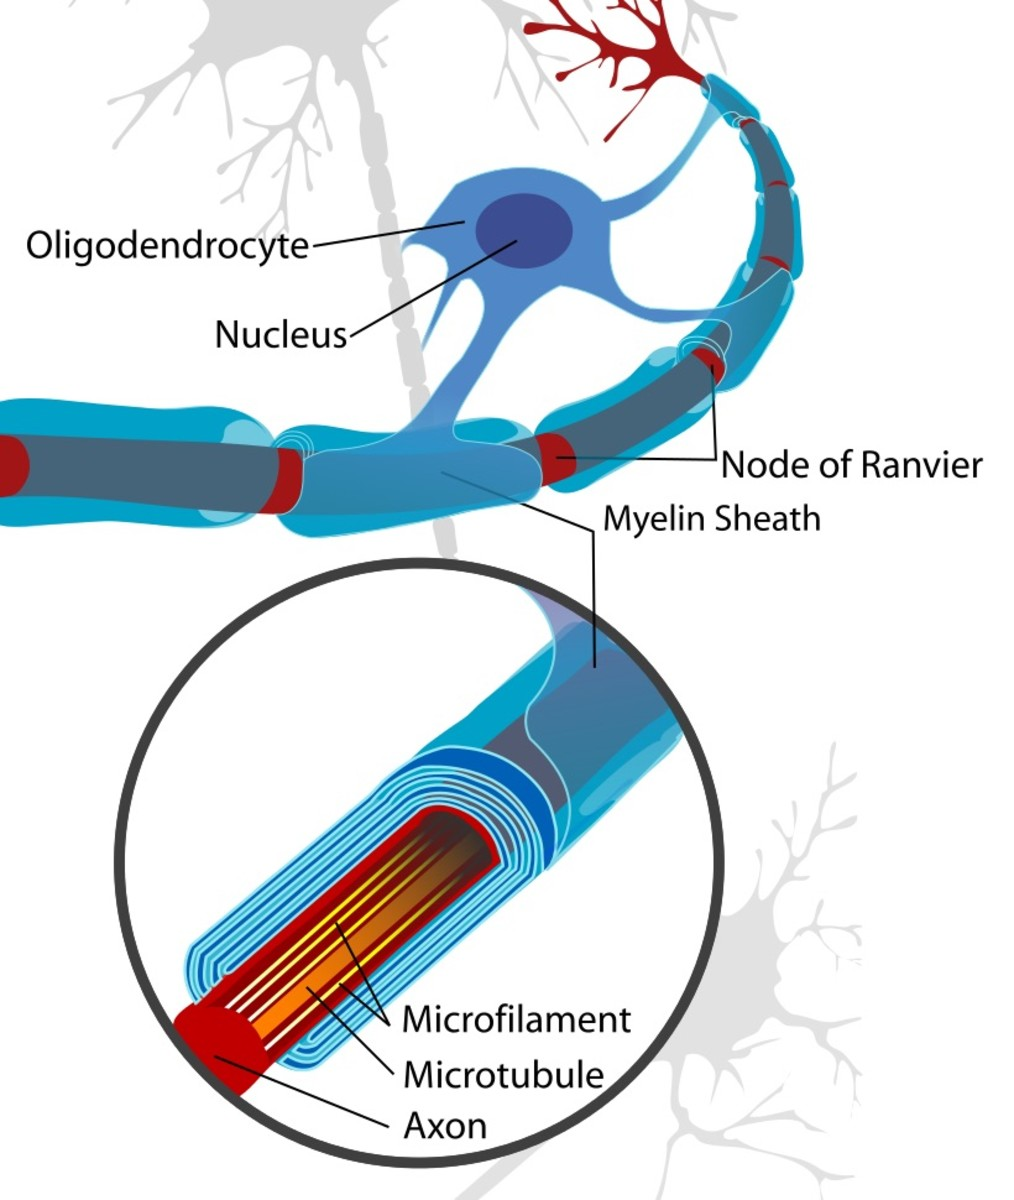 The oligodendrocyte is a glial cell that makes the myelin sheath surrounding axons in the central nervous system. Like astrocytes, it has extensions that contact neurons.